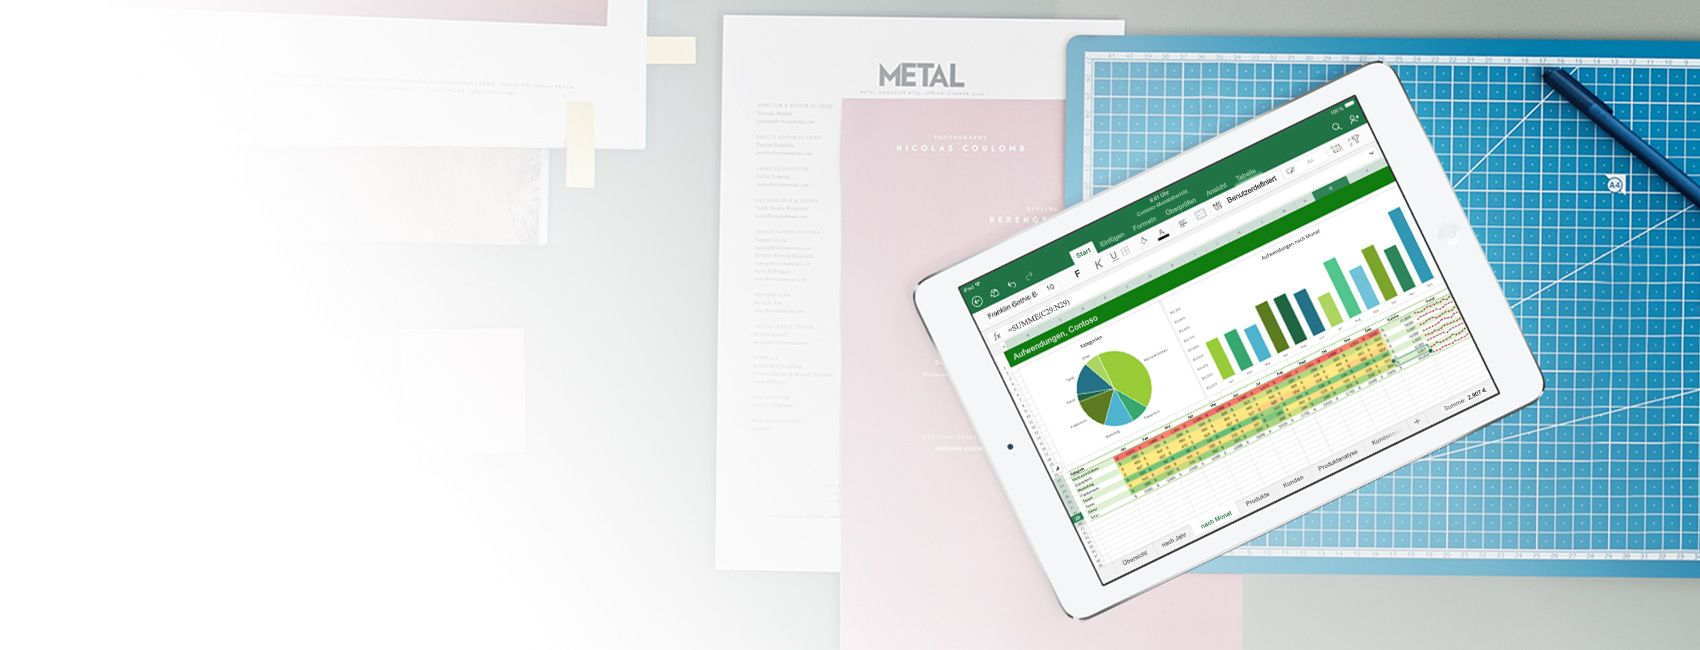 Office 365 Mobile-Apps für iOS   Word, Excel, PowerPoint